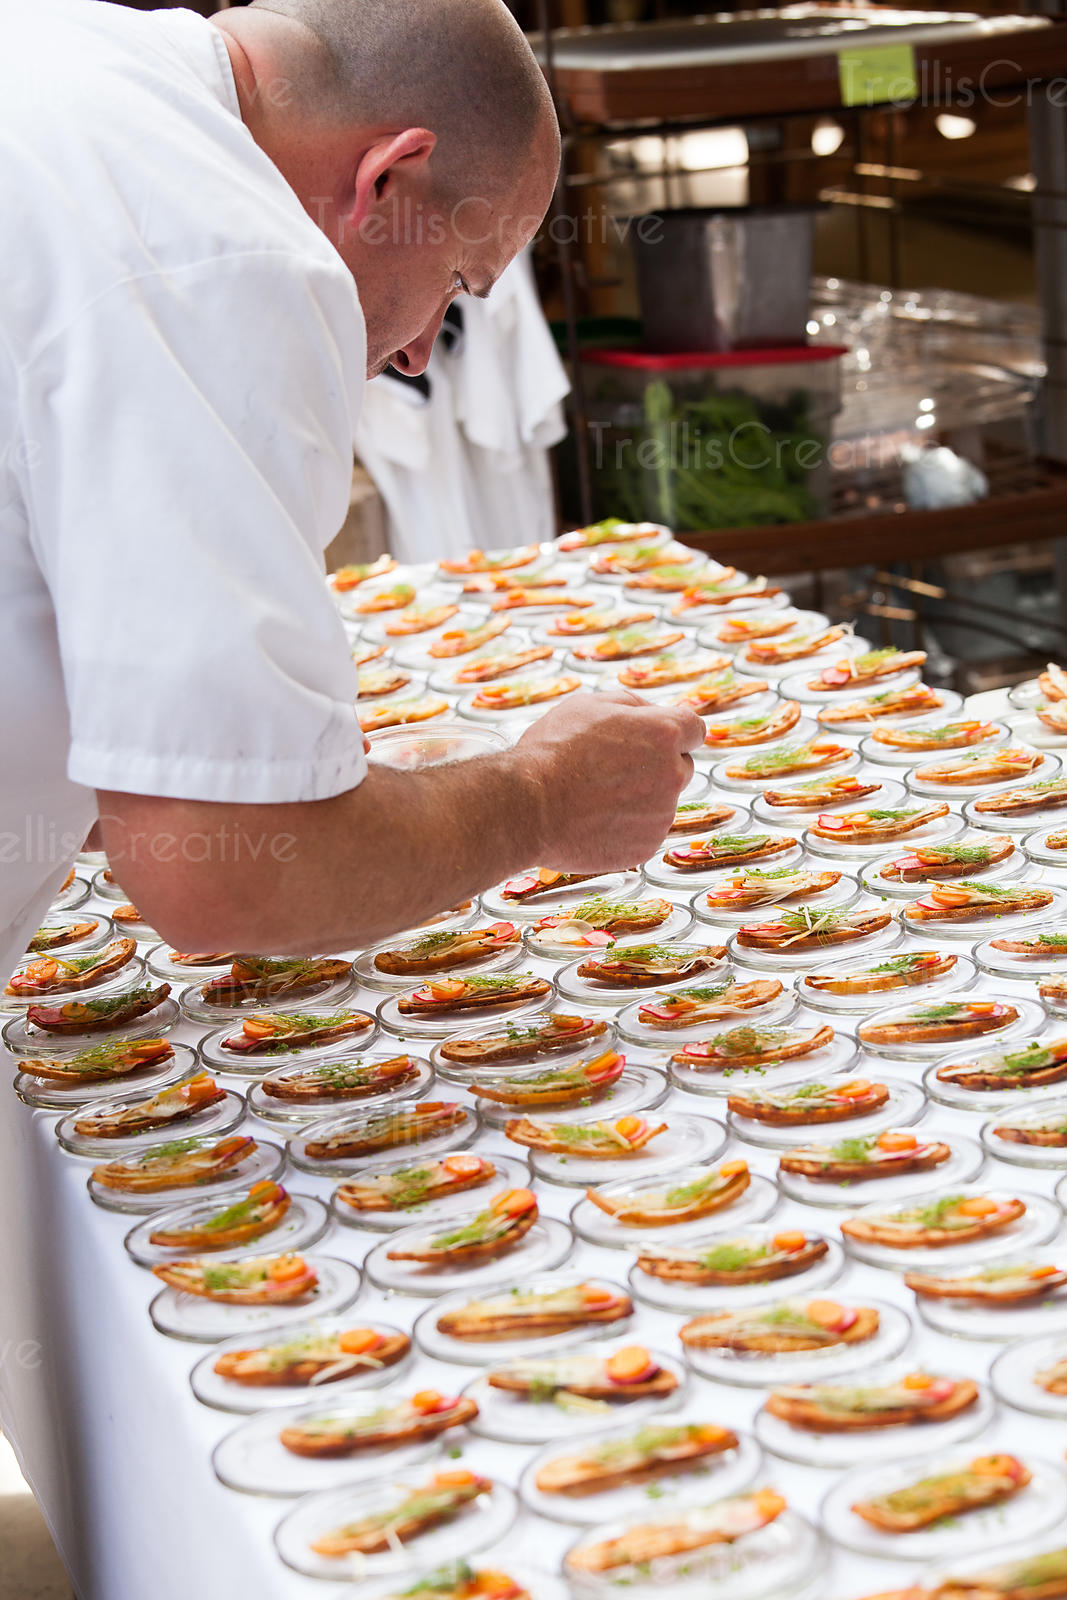 Chef putting the finishing touches on the savory crostini h'oderves ready for service at a party